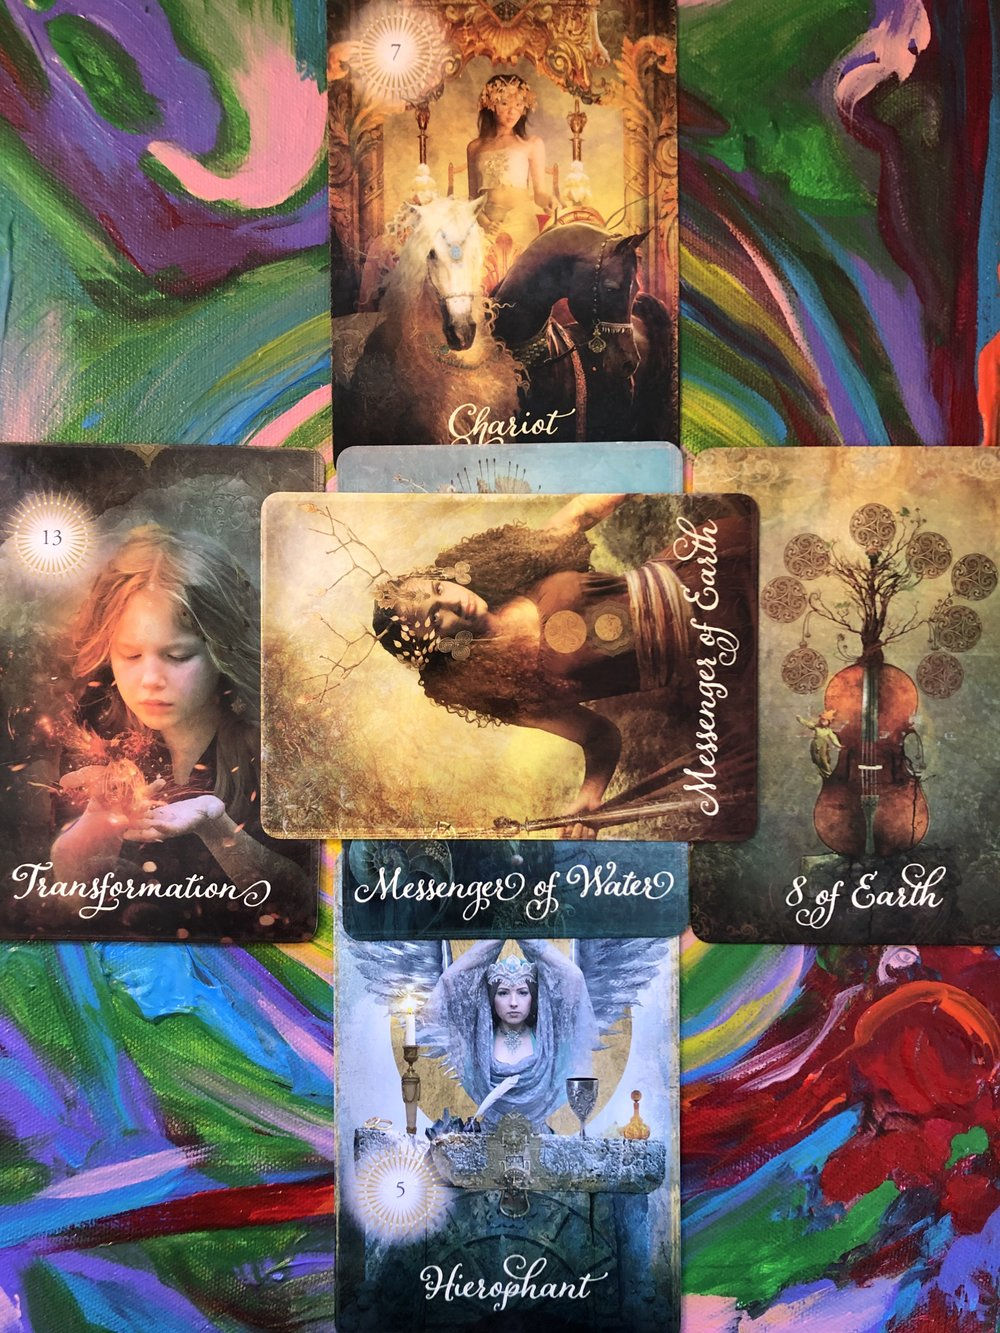 The Good Tarot/ Artwork by Crystal Mays at www.crystalmays.com